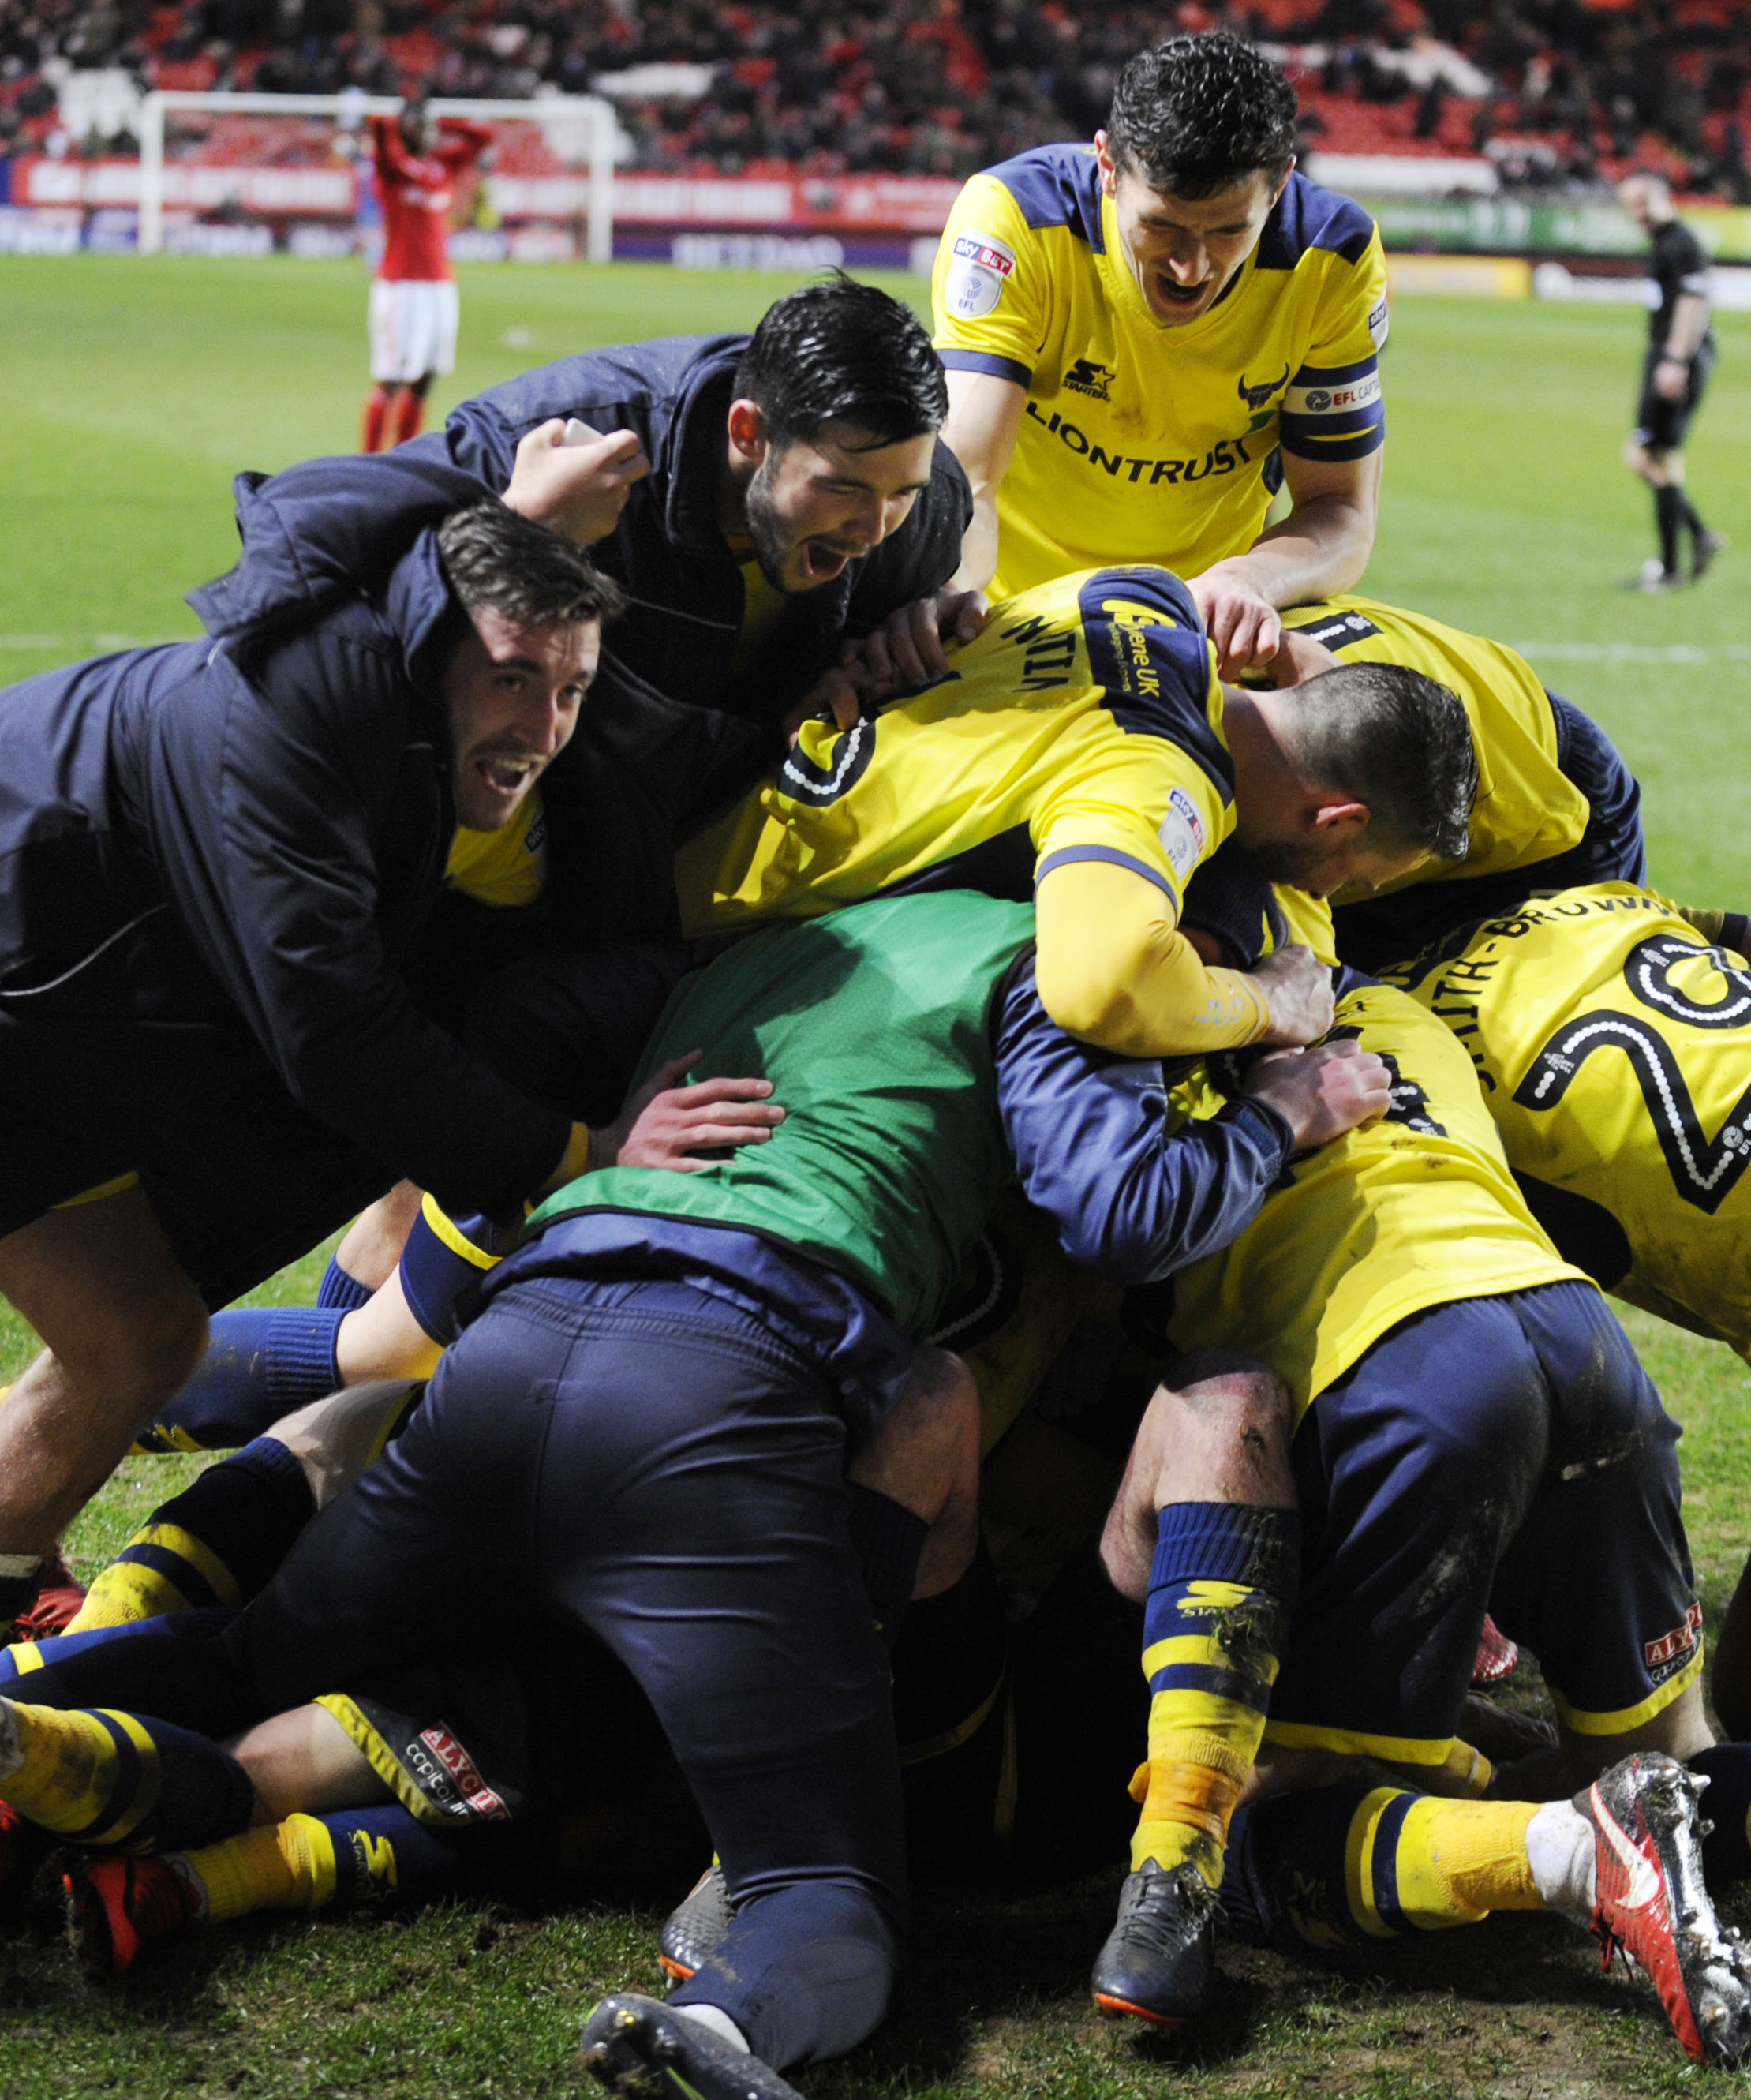 FEELGOOD FACTOR: Joe Rothwell (left) races to join in the Oxford United celebrations at Charlton after Ryan Ledson's injury-time winnerPicture: David Fleming